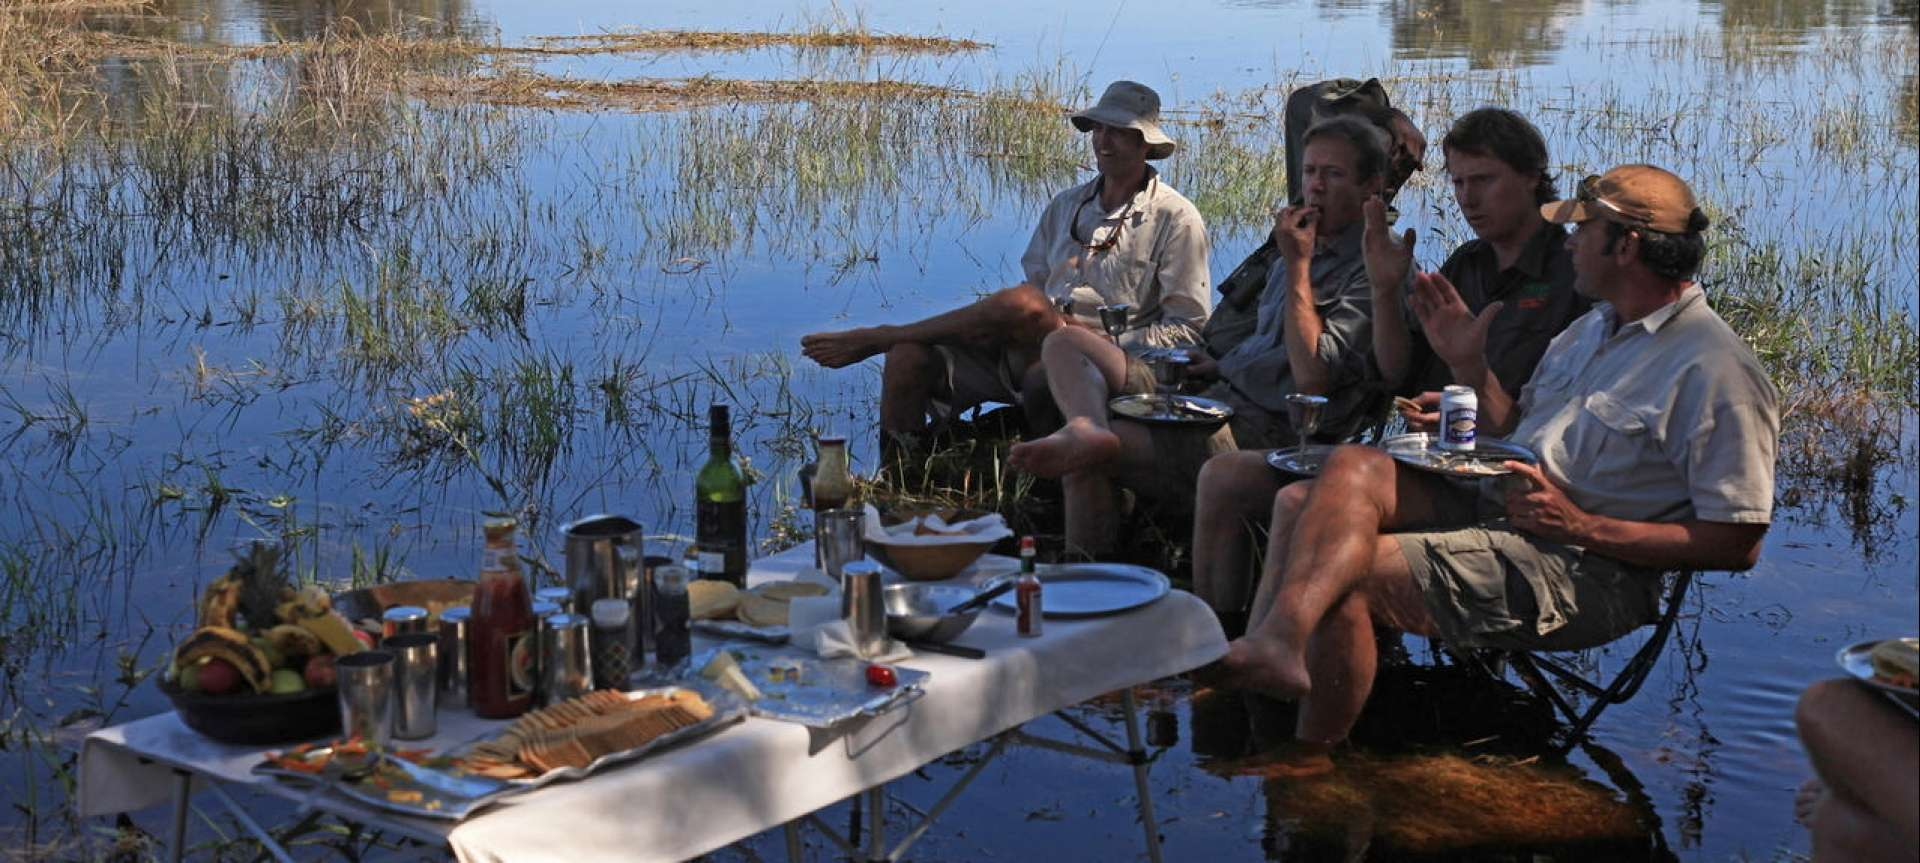 Selinda canoe trails are a popular excursion for the more adventurous at heart